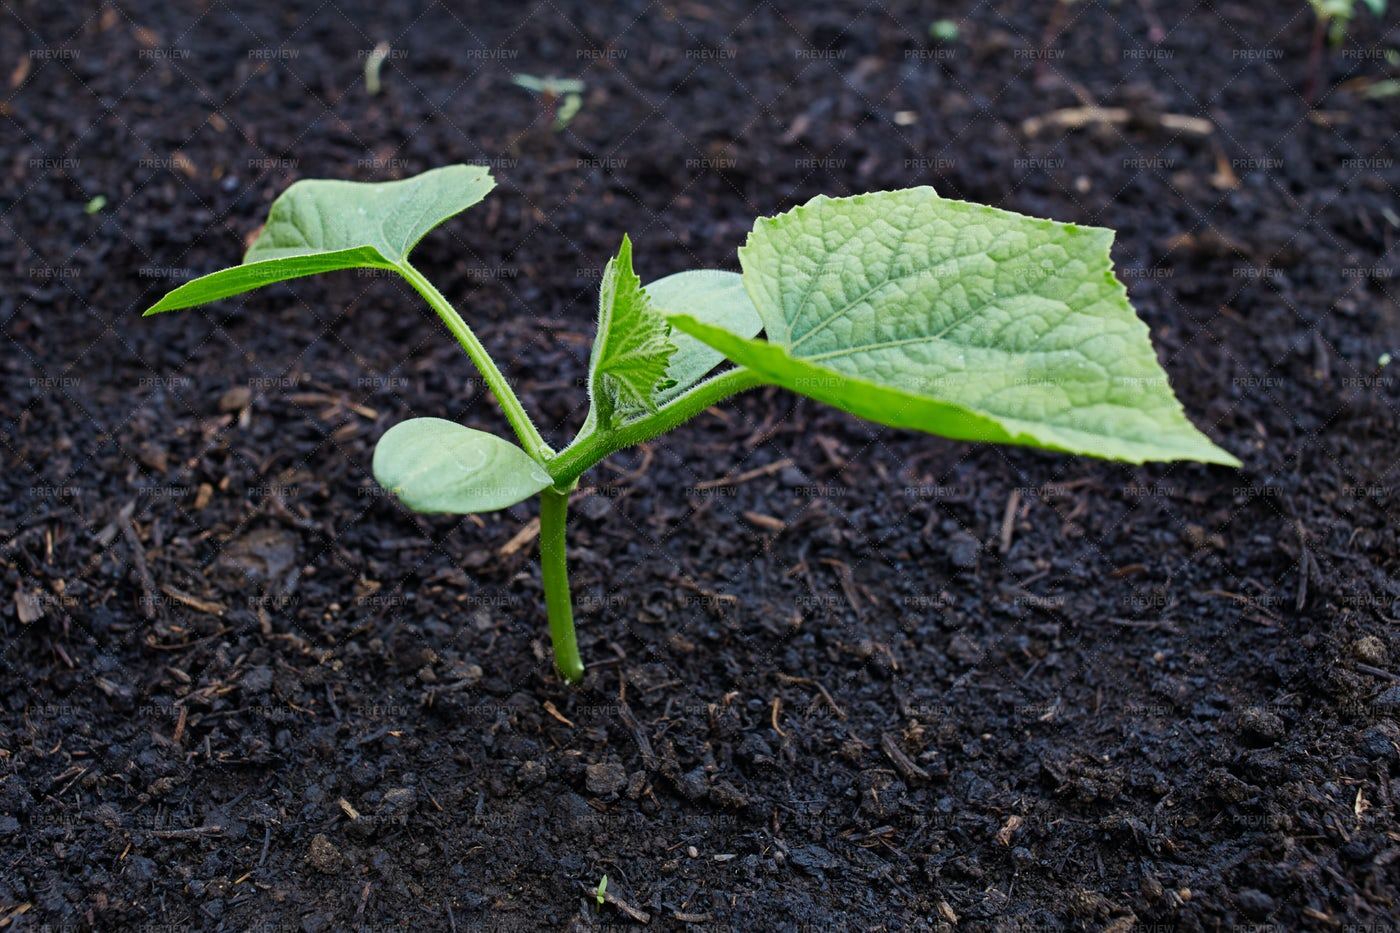 A Growing Cucumber Sprout: Stock Photos